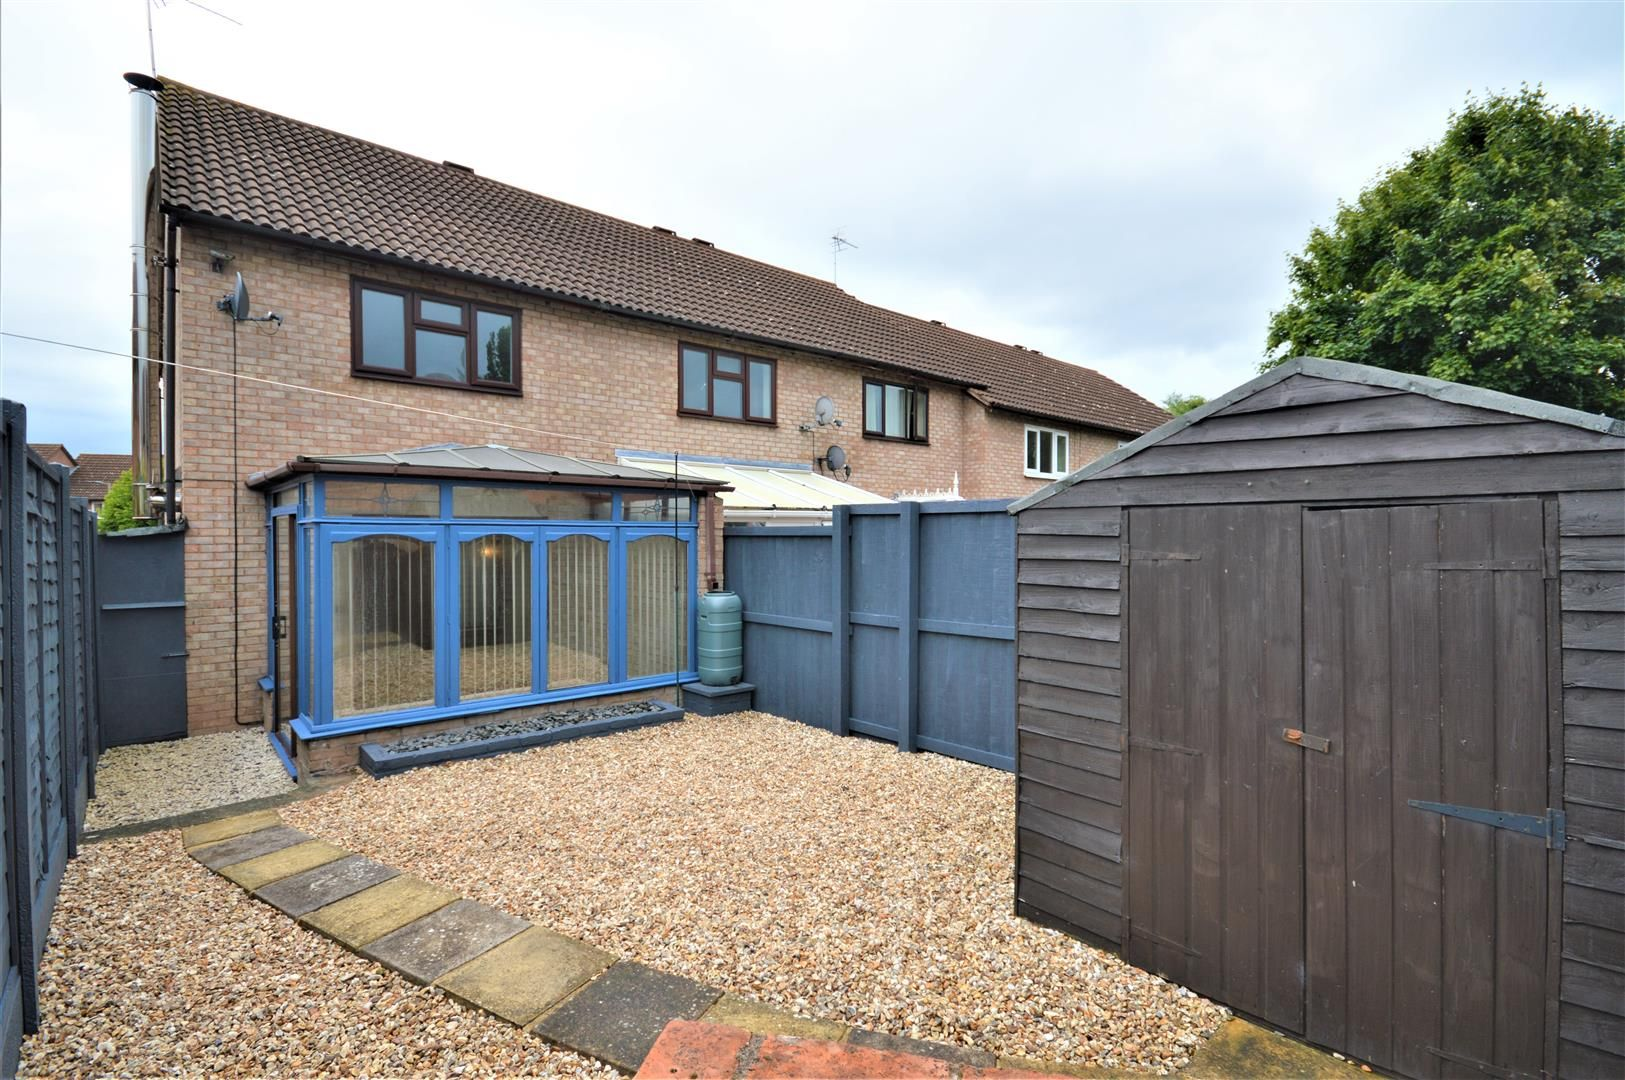 2 bed end-of-terrace for sale in Belmont 11